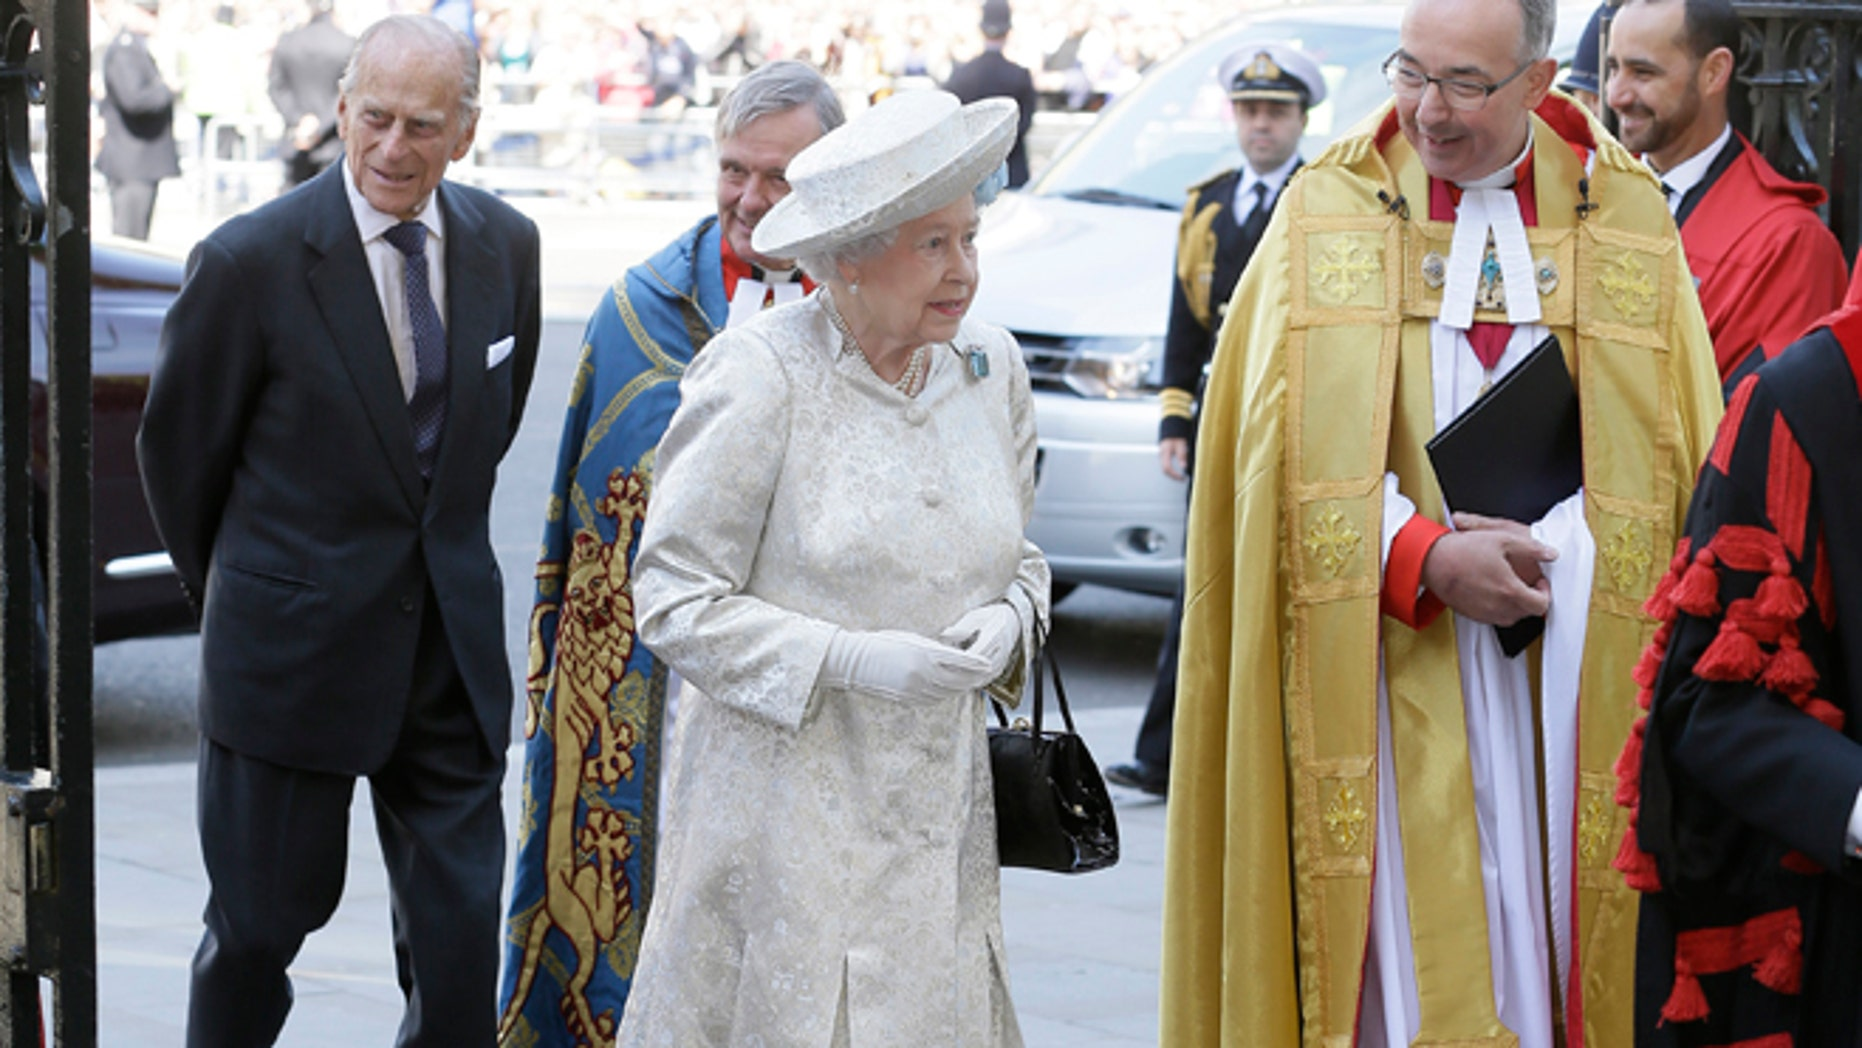 June  4, 2013: Britain's Queen Elizabeth II and her husband Prince Philip, left, arrive for service to celebrate the Queen's 60th anniversary of her coronation at Westminster Abbey, escorted by The Dean of  the Abbey  Dr John Hall in London.